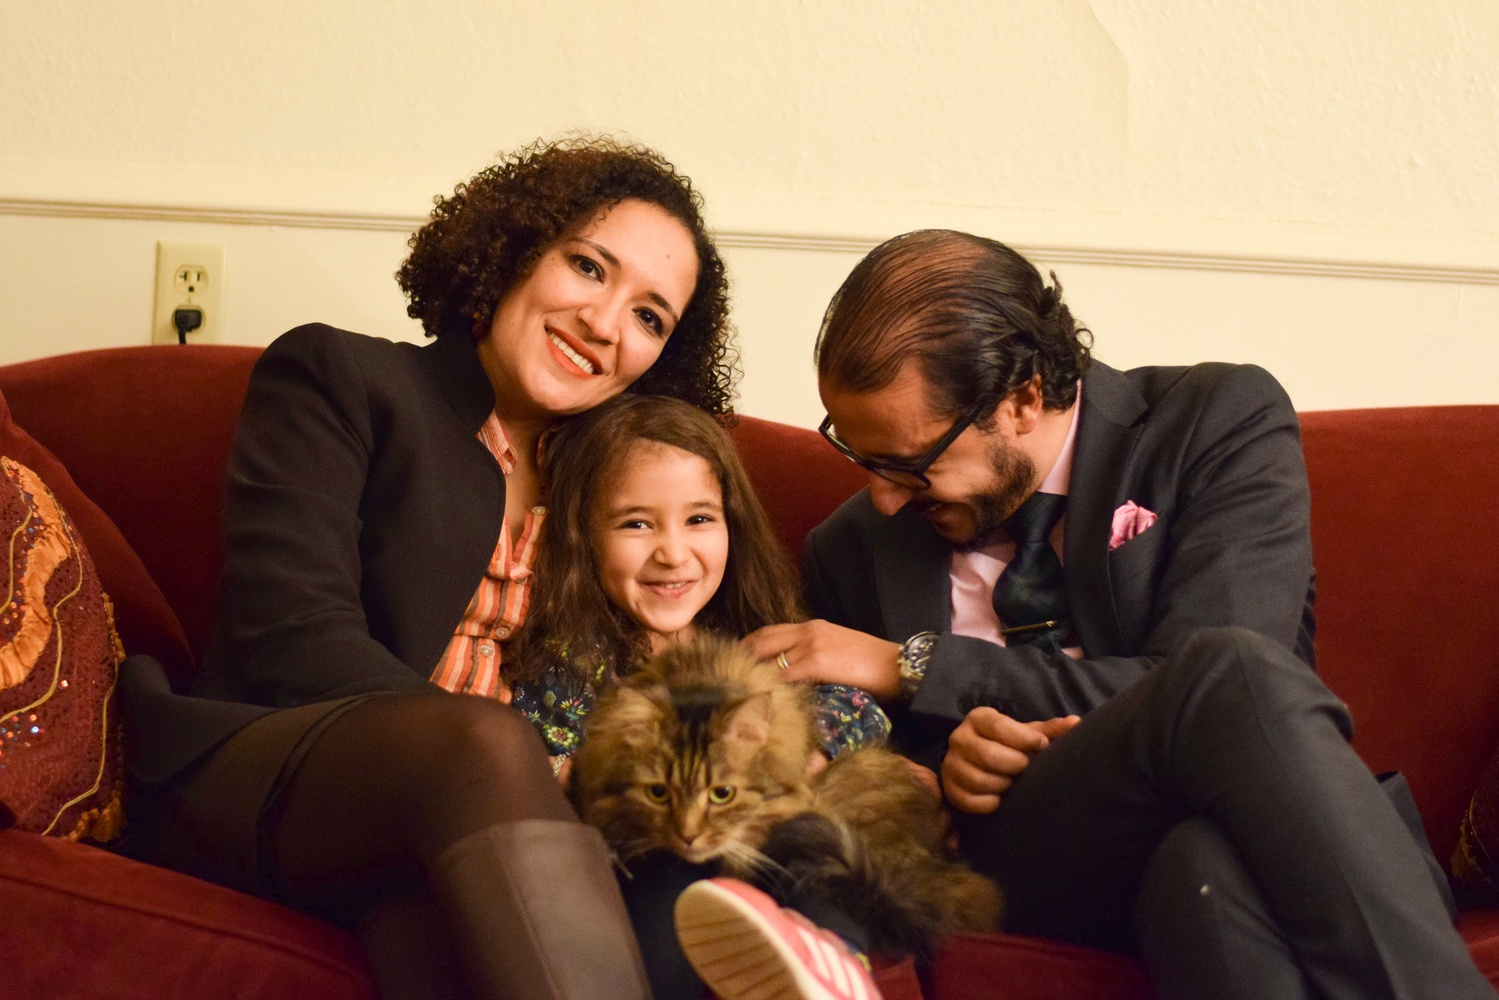 From left to right: Professor Soha Bayoumi, their daughter Carmen holding their cat Jesse, and Professor Ahmed Ragab, in their home living room in Kirkland House.